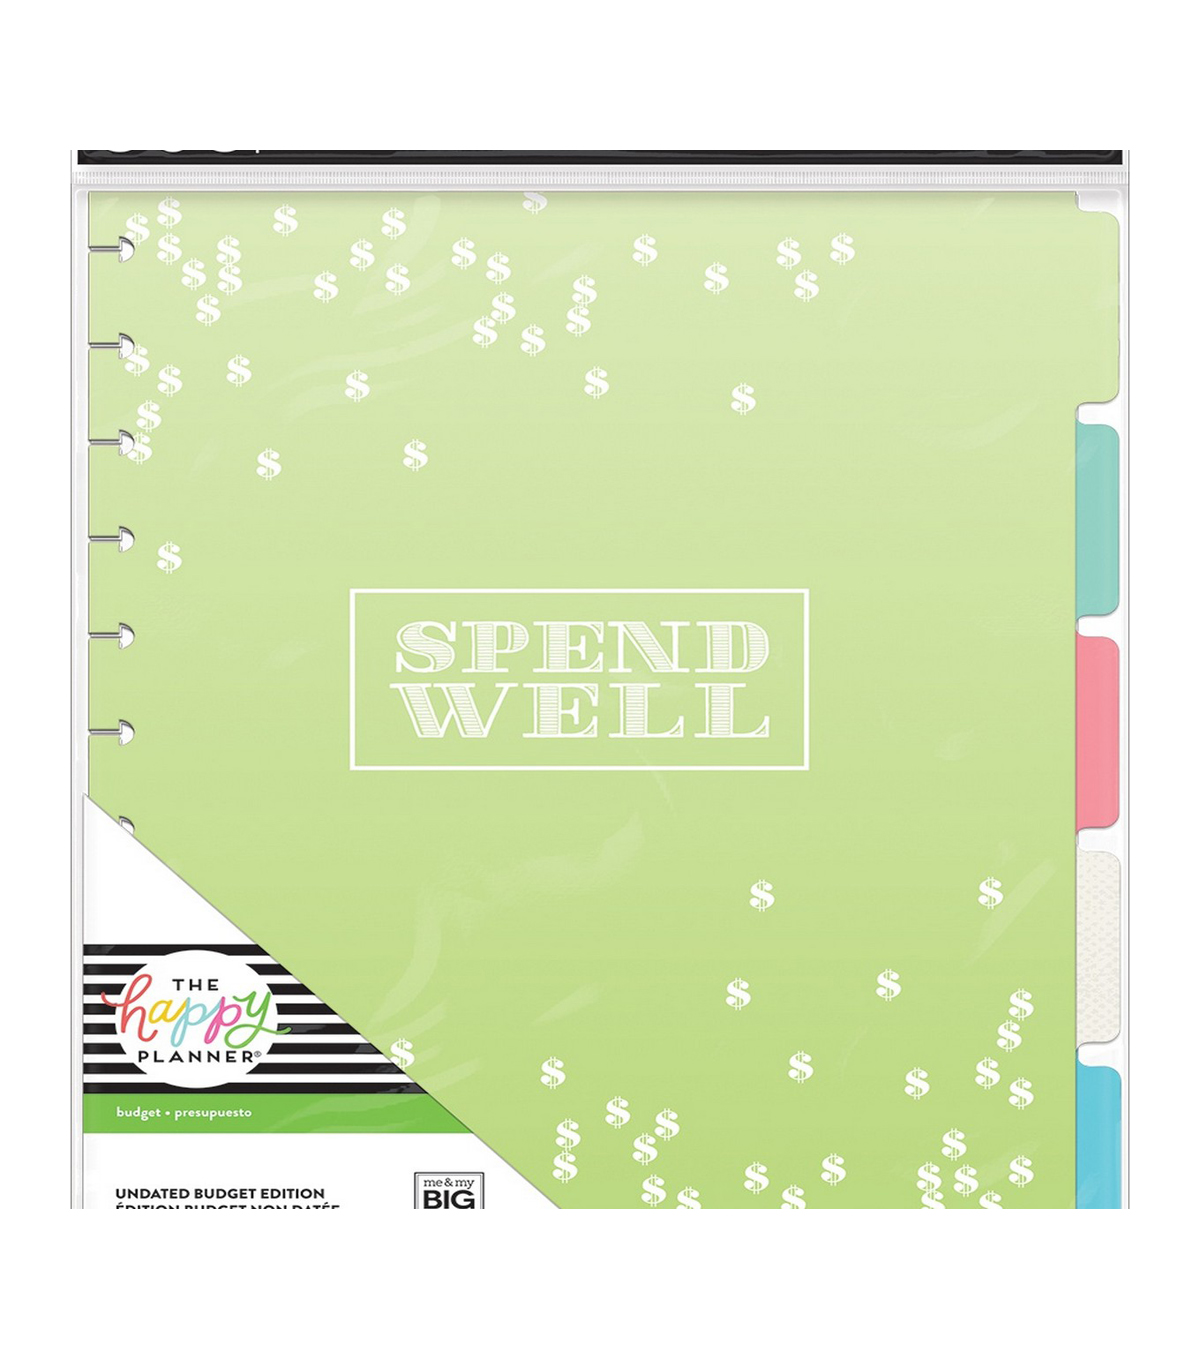 The Happy Planner Undated Budget Edition Big Planner Extension Pack